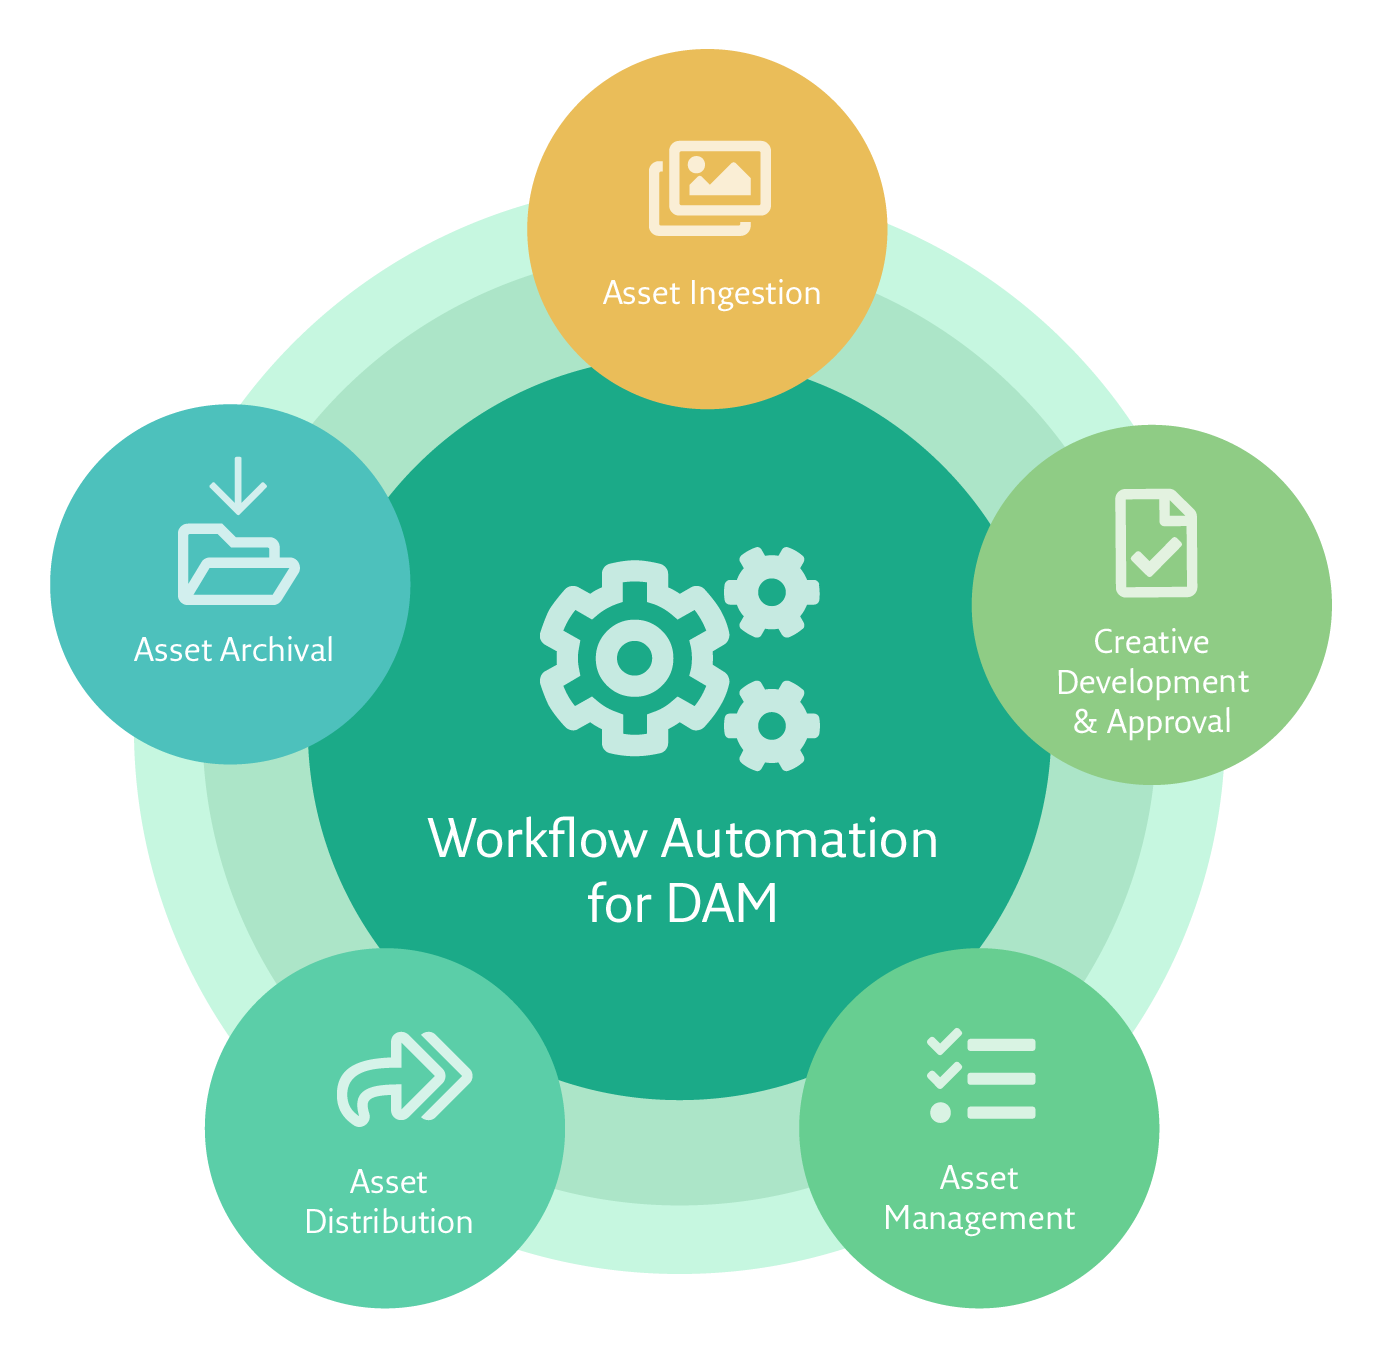 P2017 - Flow Chart - Workflow Automation - 150